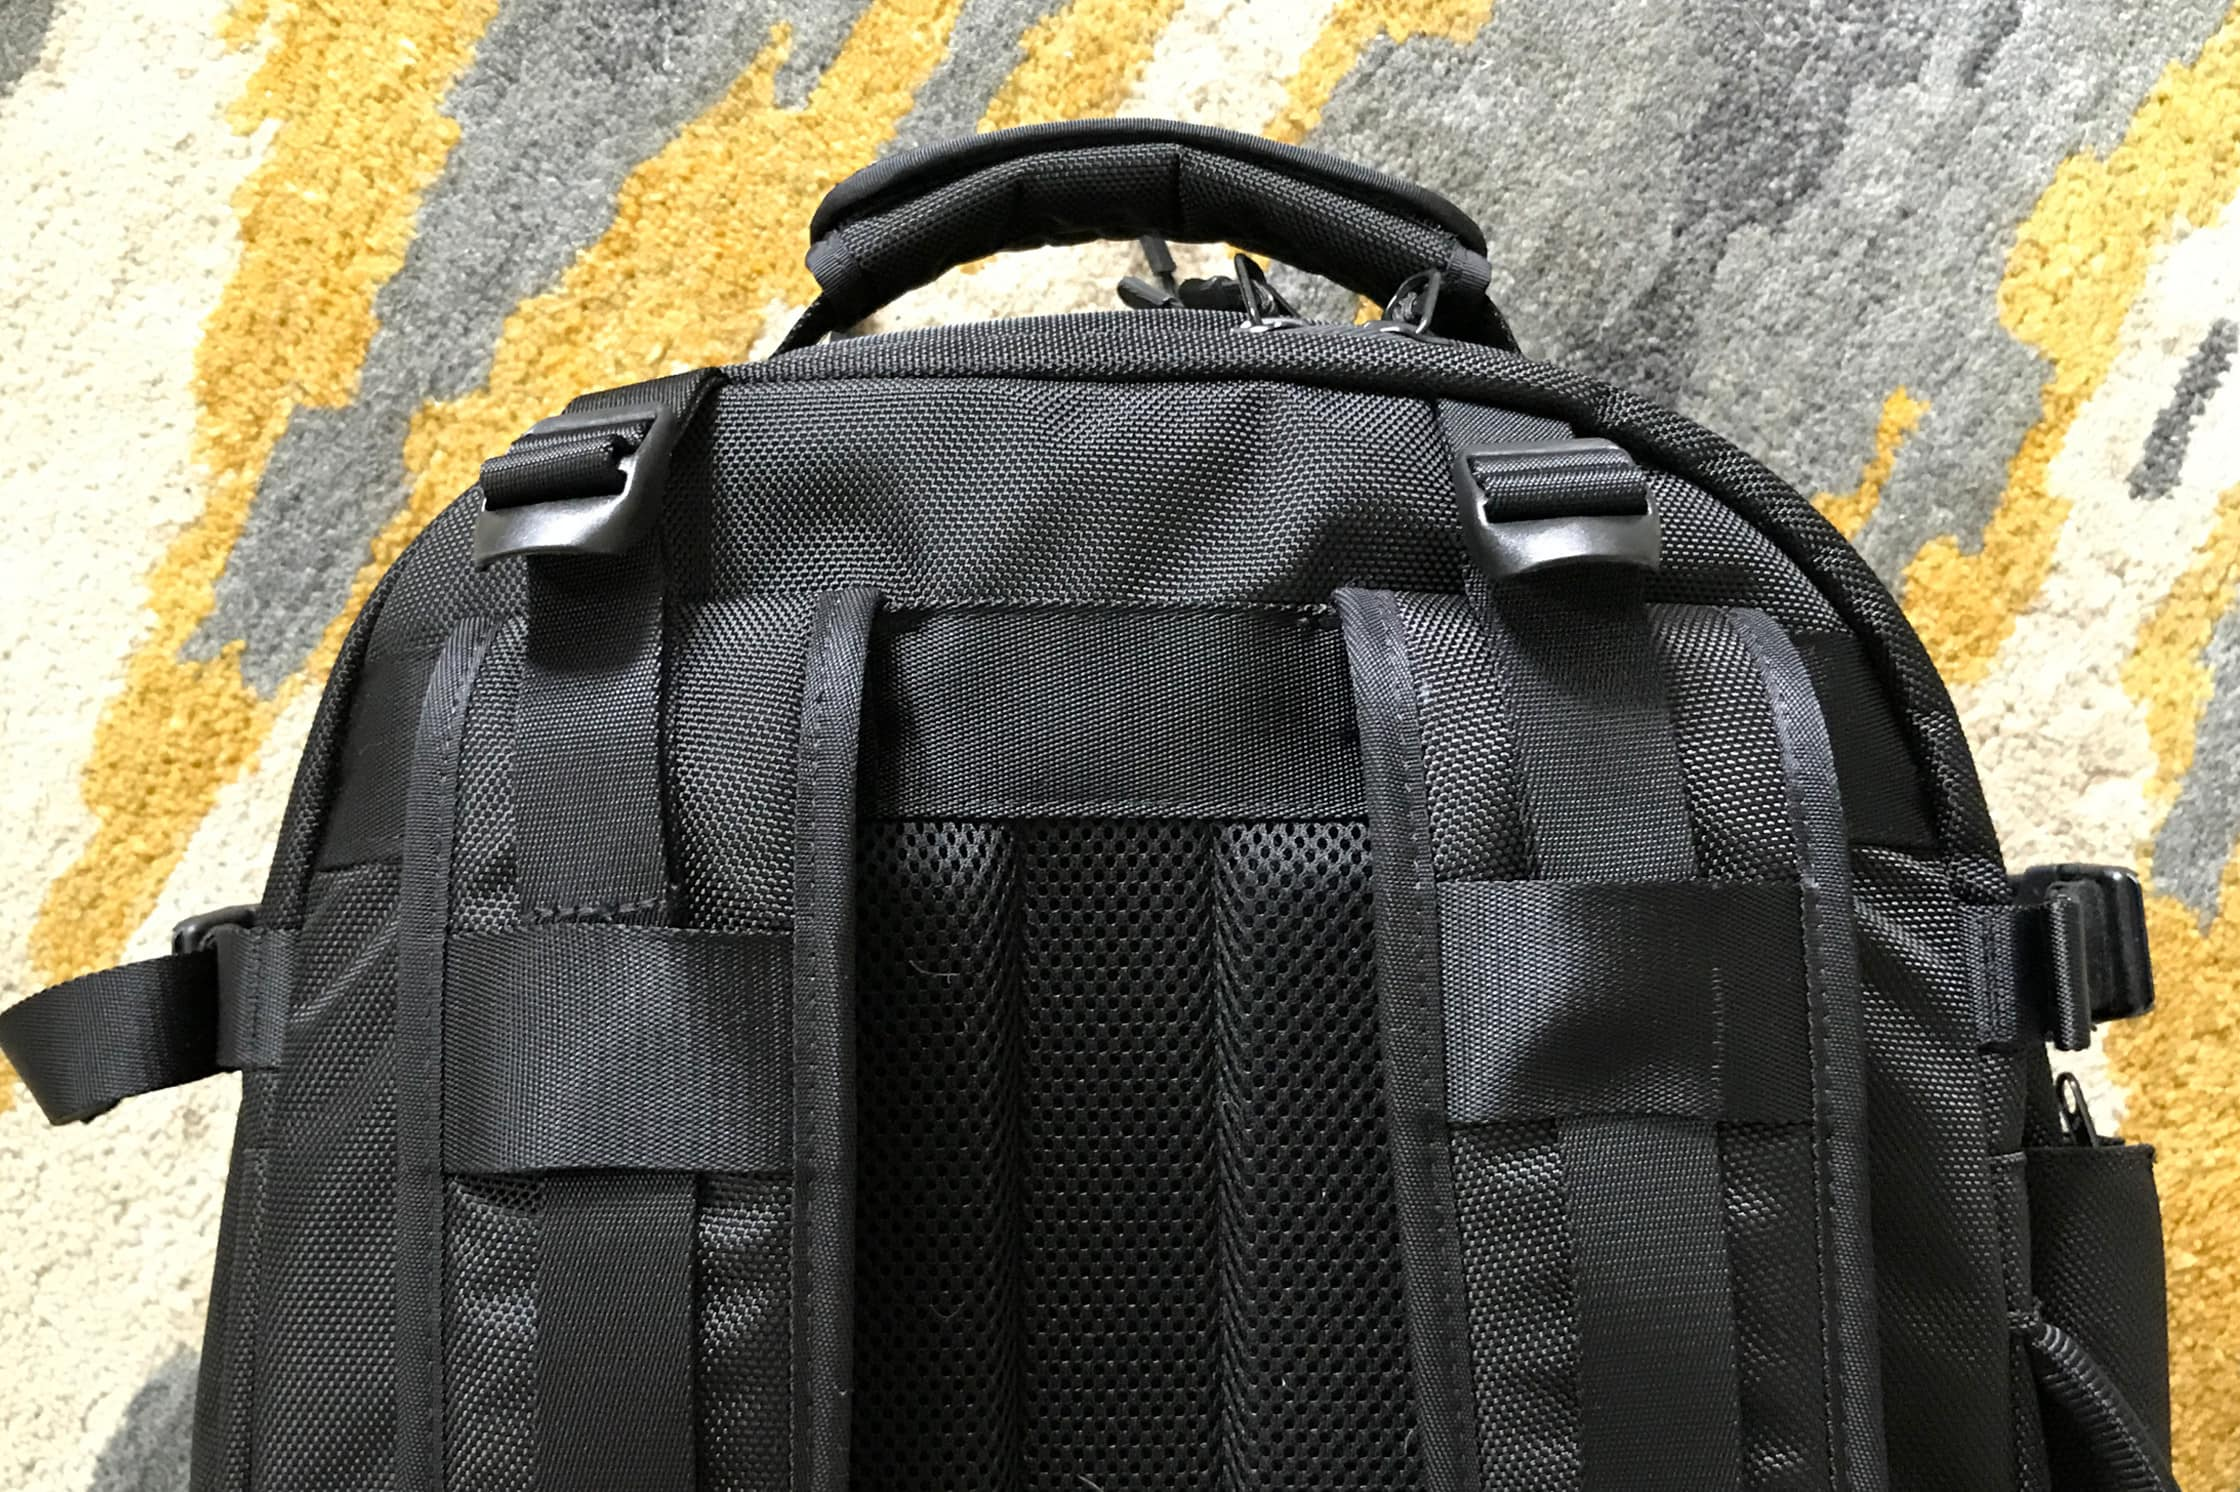 Aer Travel Pack Top Strap Adjustment